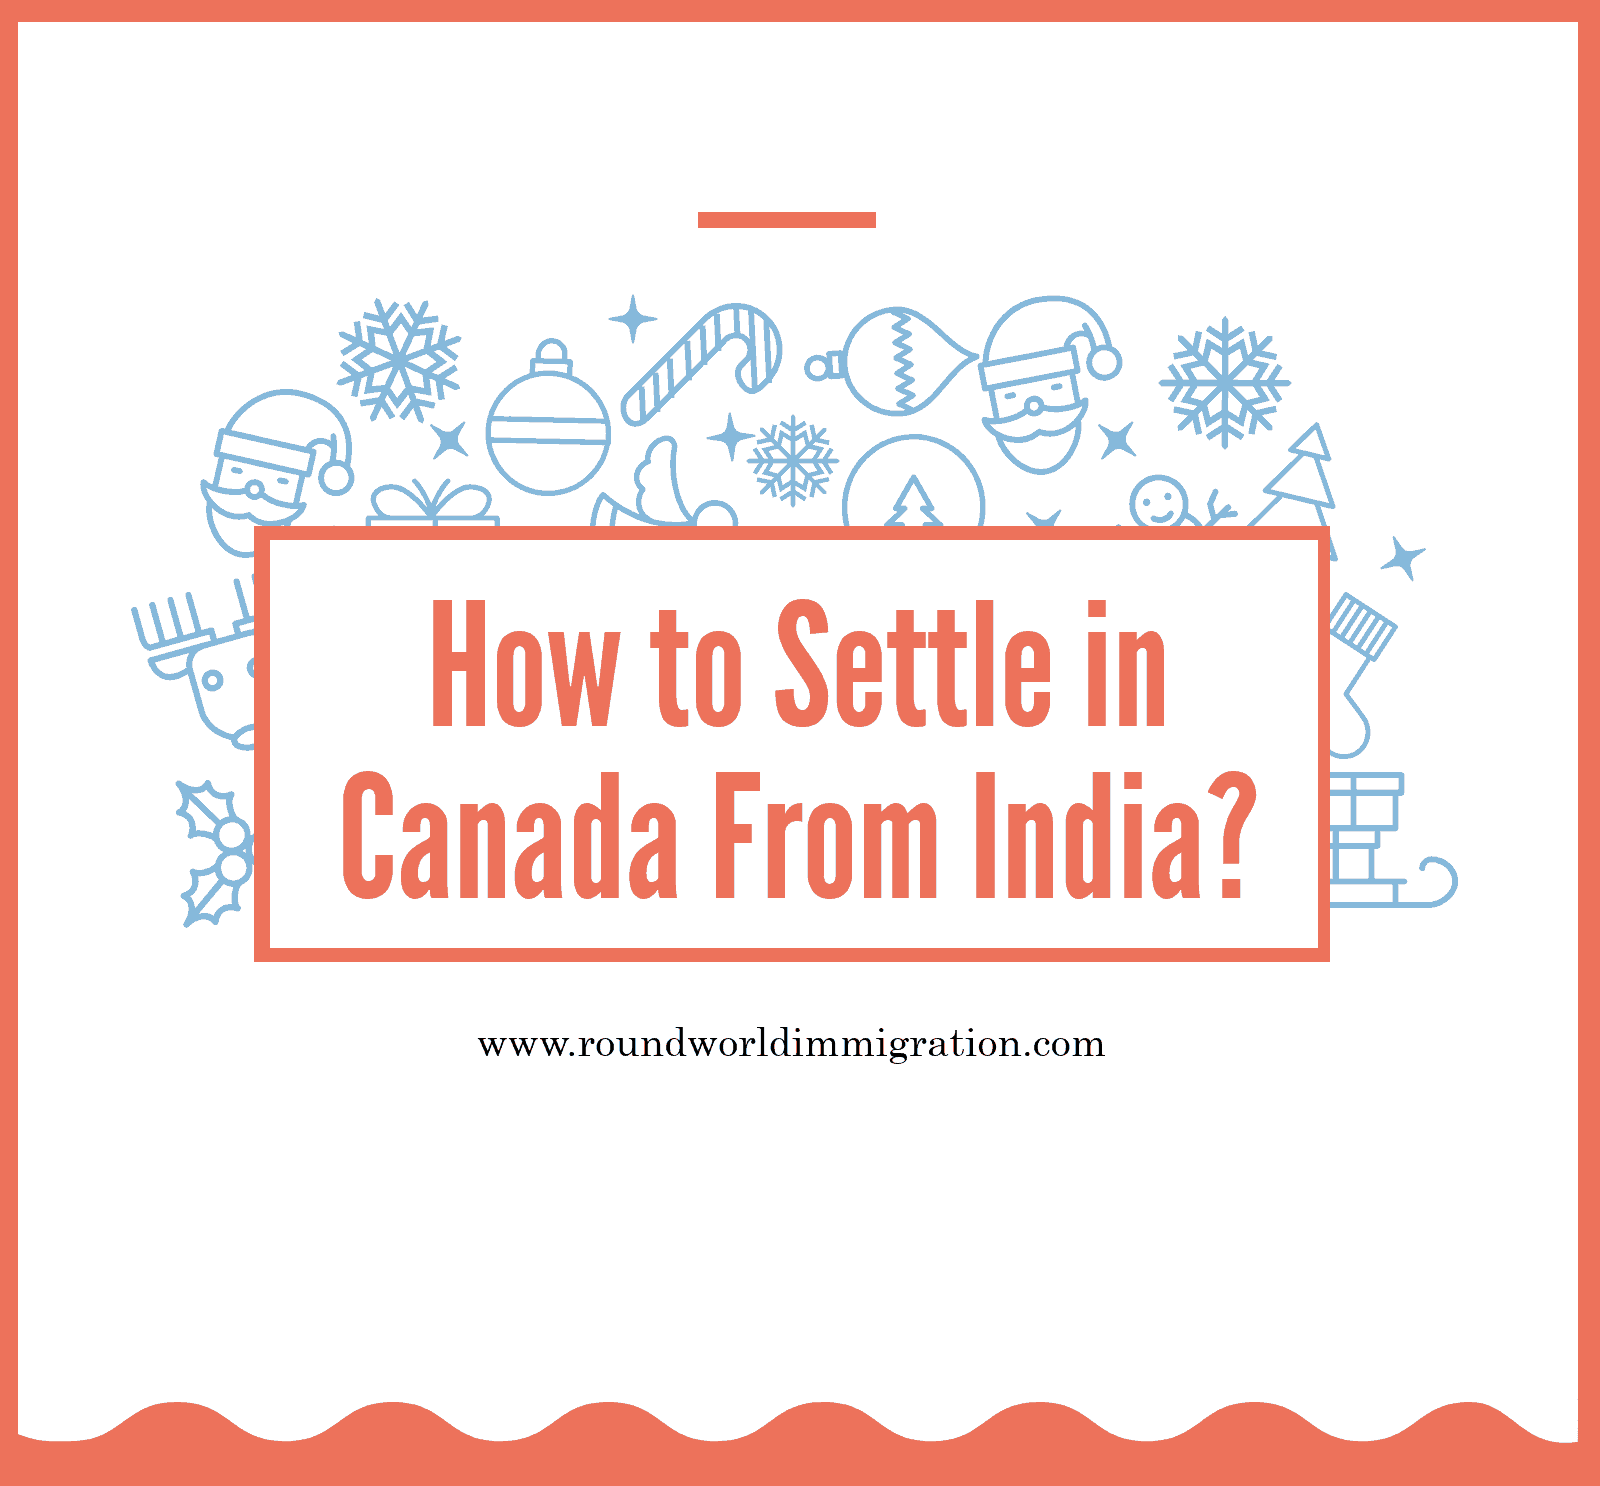 How to Settle in Canada From India | Round World Immigration